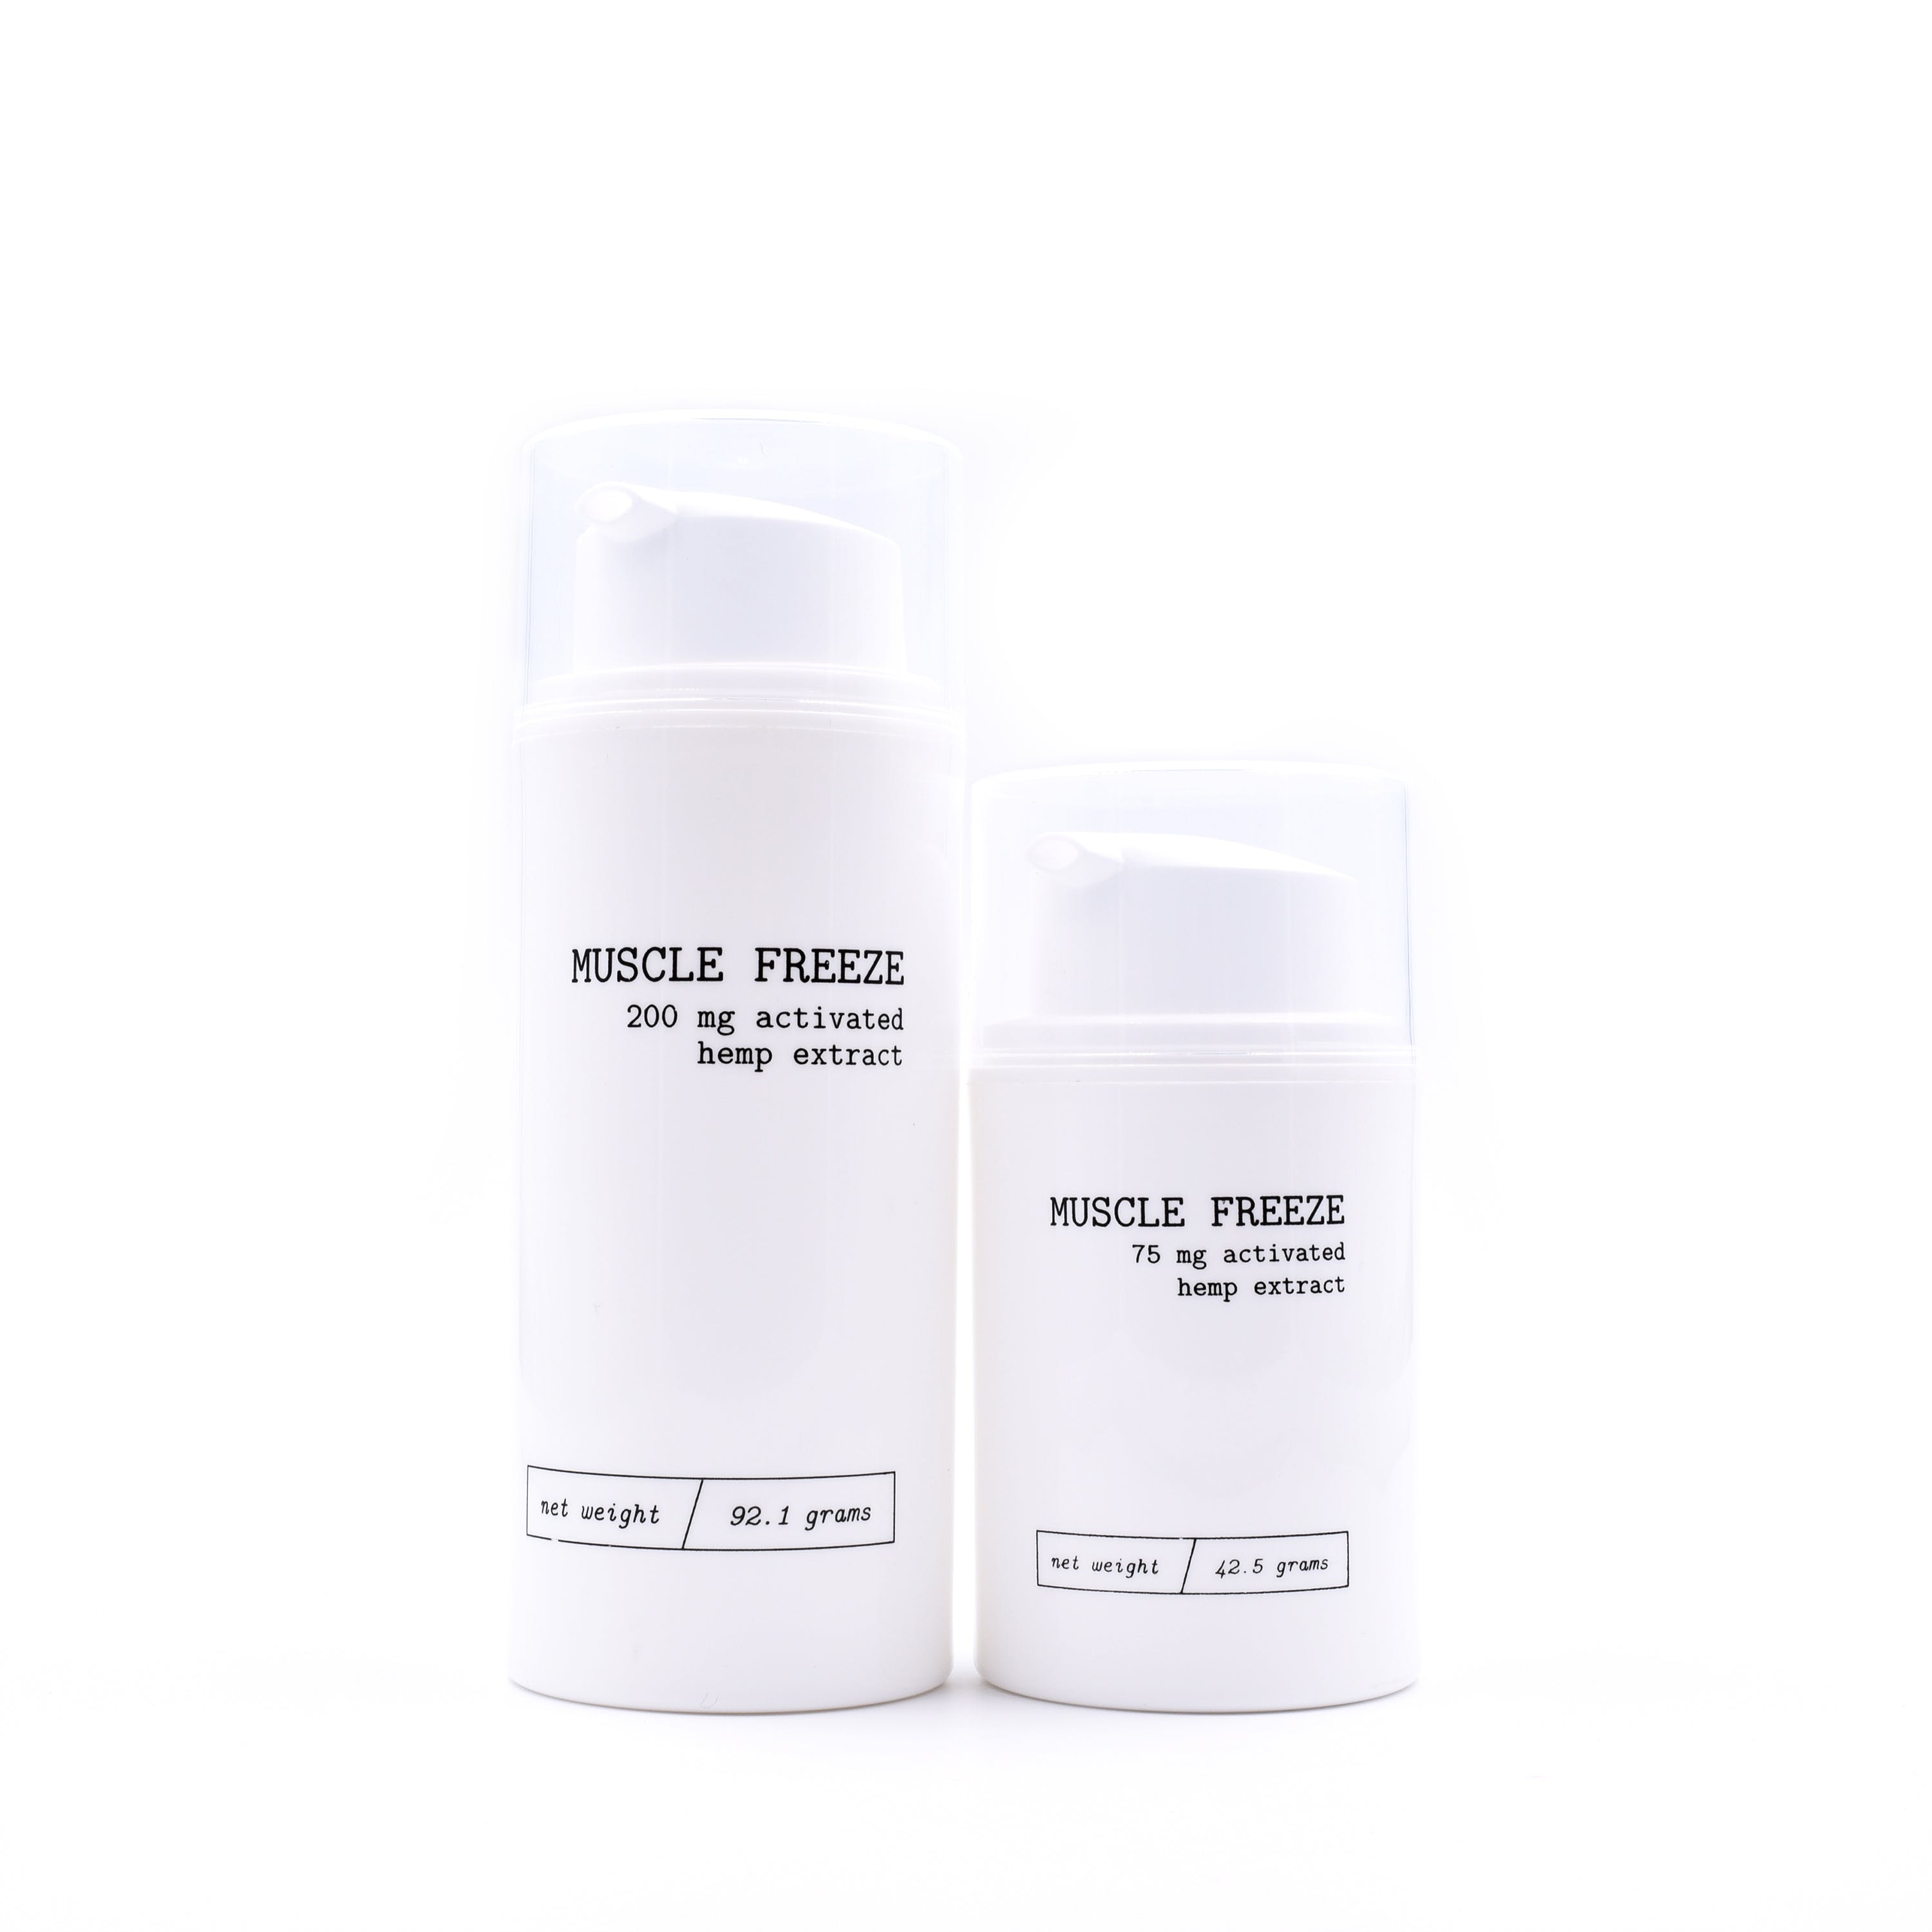 Mary's Medicinals Muscle Freeze 3oz